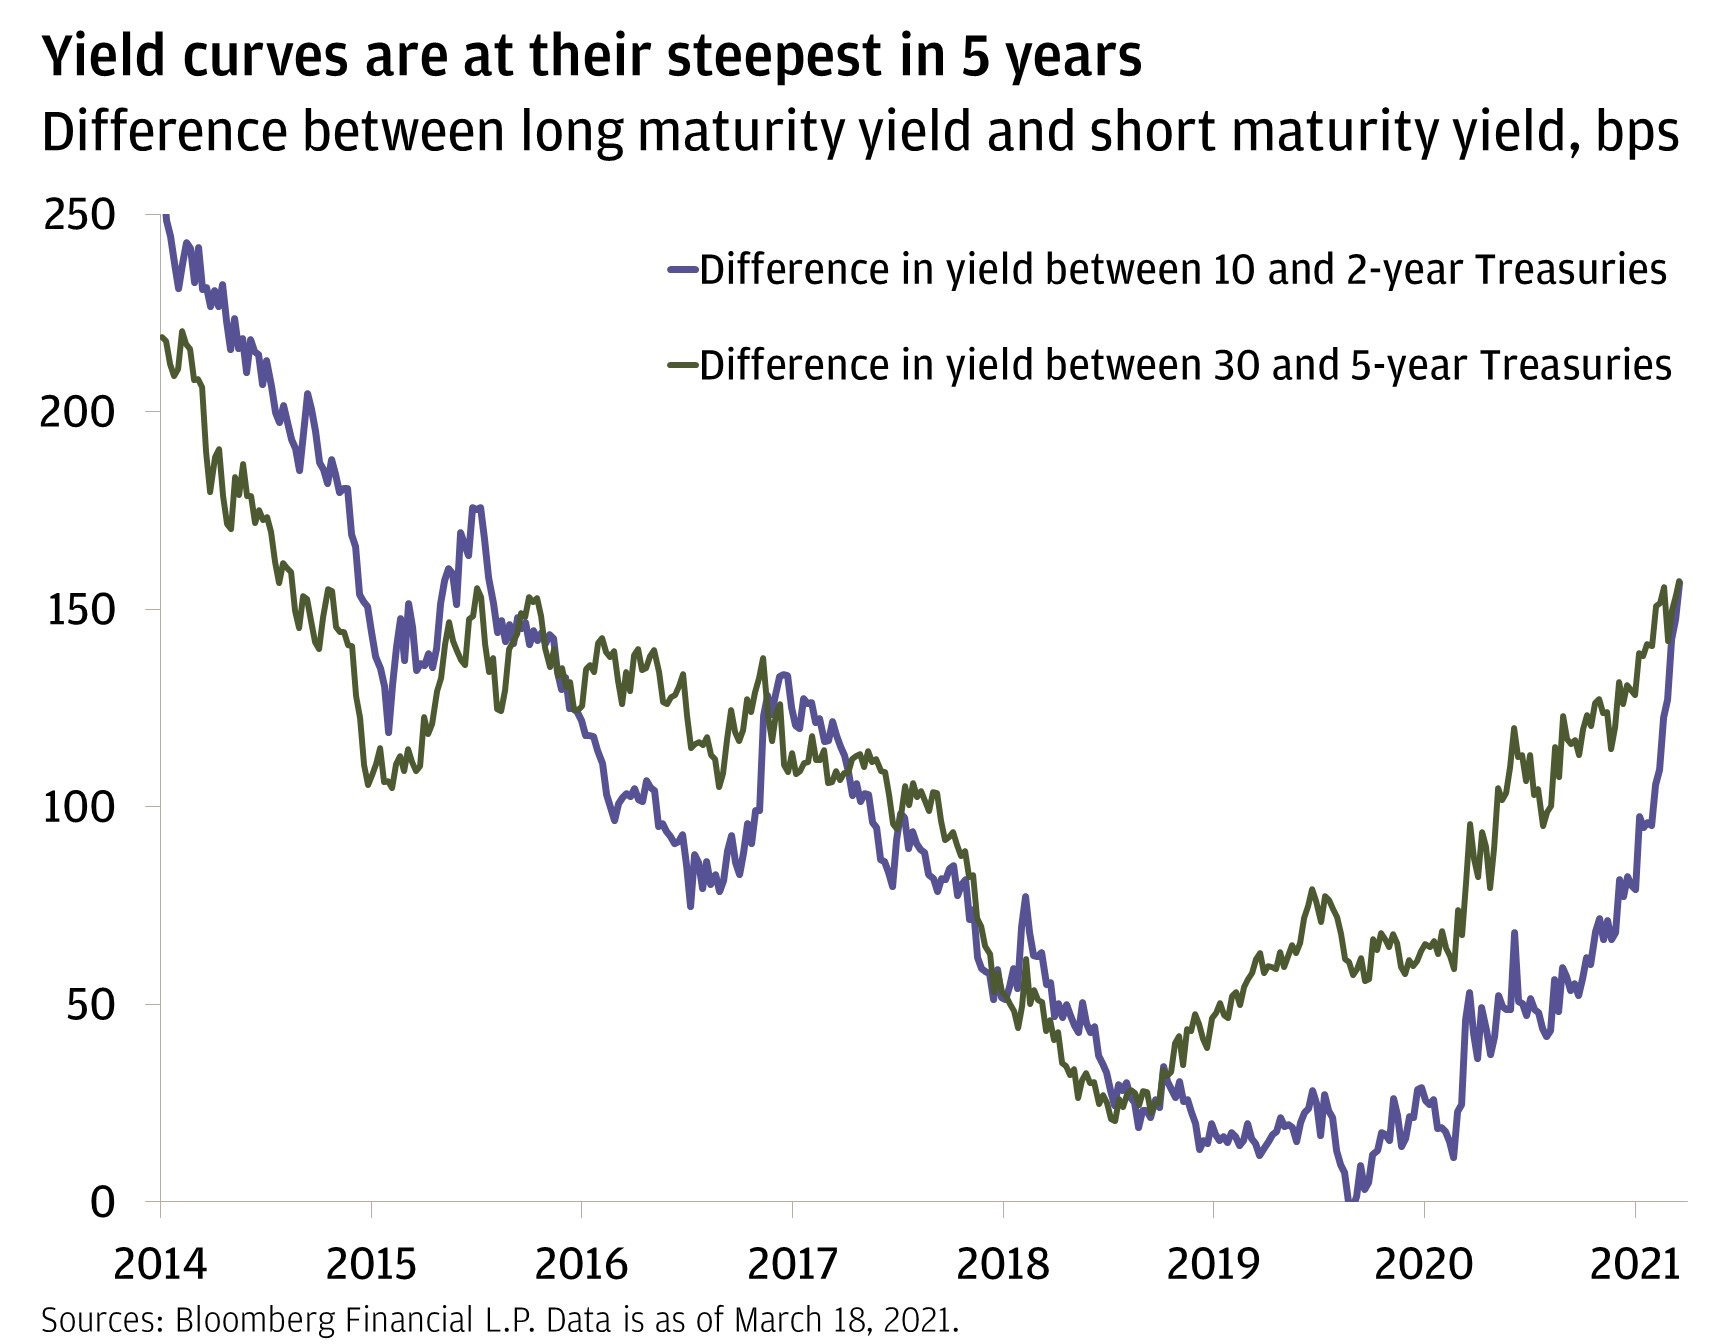 Chart 1: This chart shows the difference between the yields on 2- and 10-year Treasuries, as well as the difference between 5- and 30-year Treasuries from January 3, 2014, to March 18, 2021.